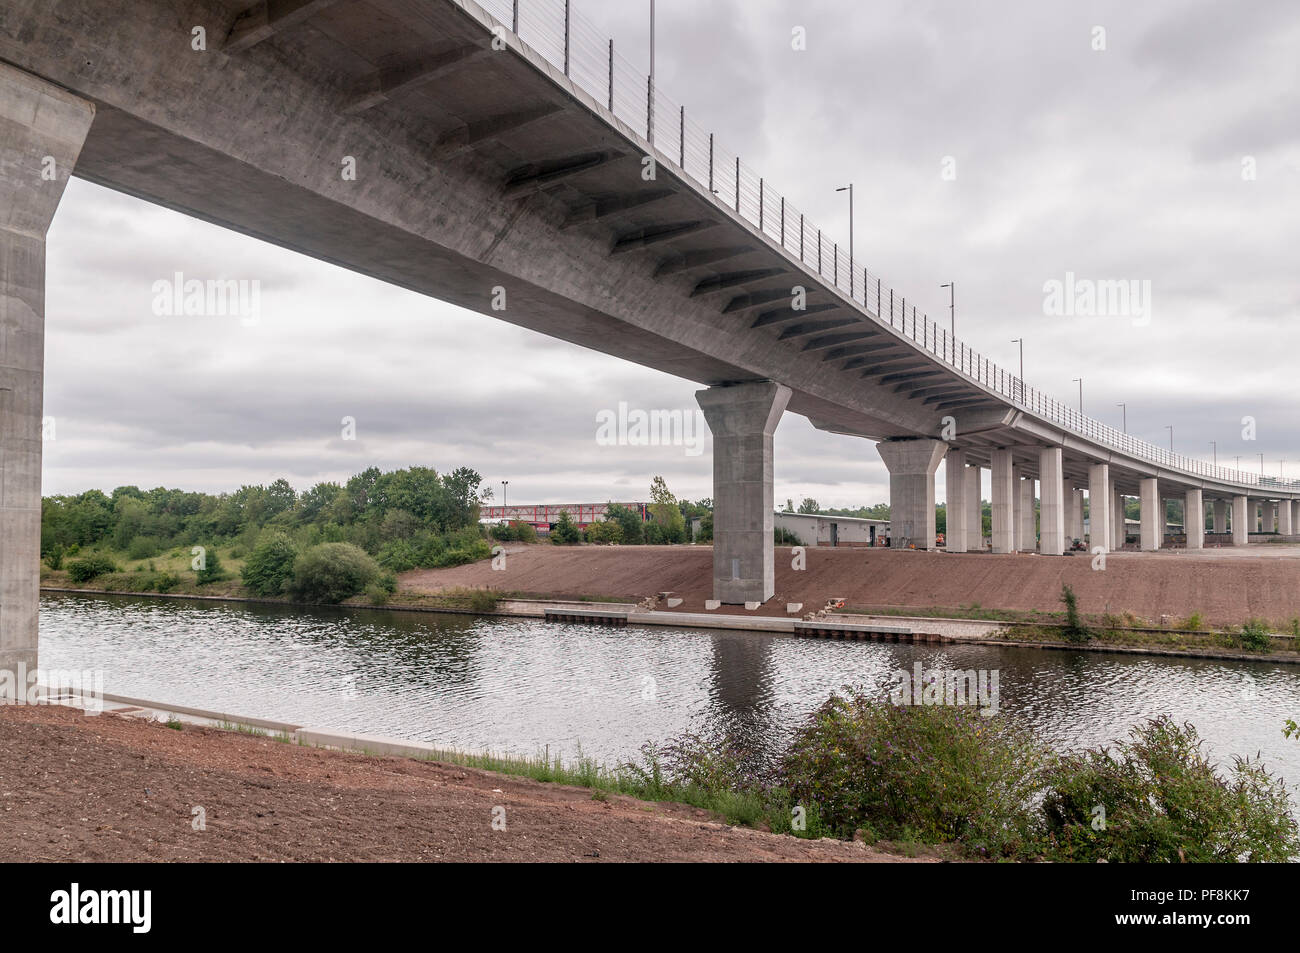 Gateway bridge over the Manchestership canal and river Mersey. - Stock Image